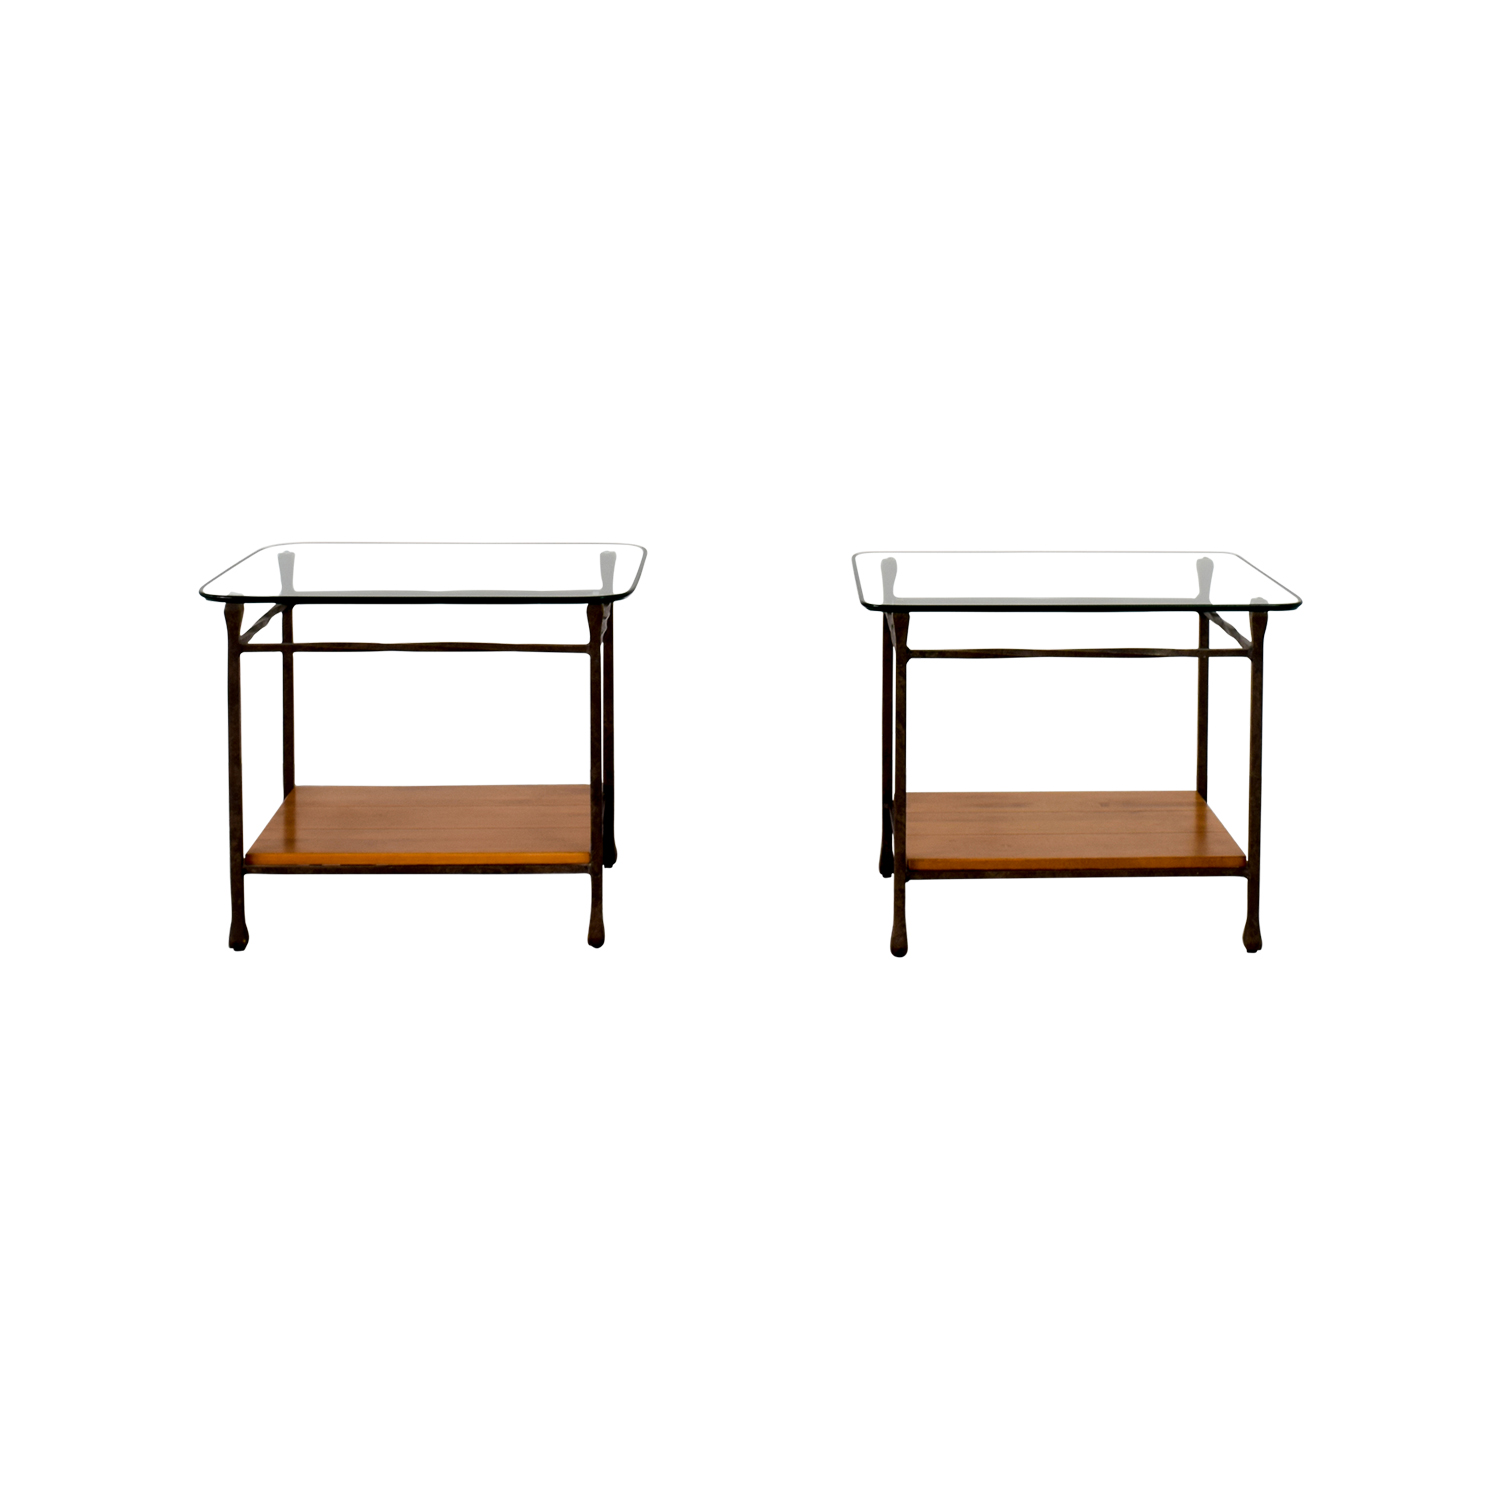 Ethan Allen Wrought Iron End Tables / End Tables